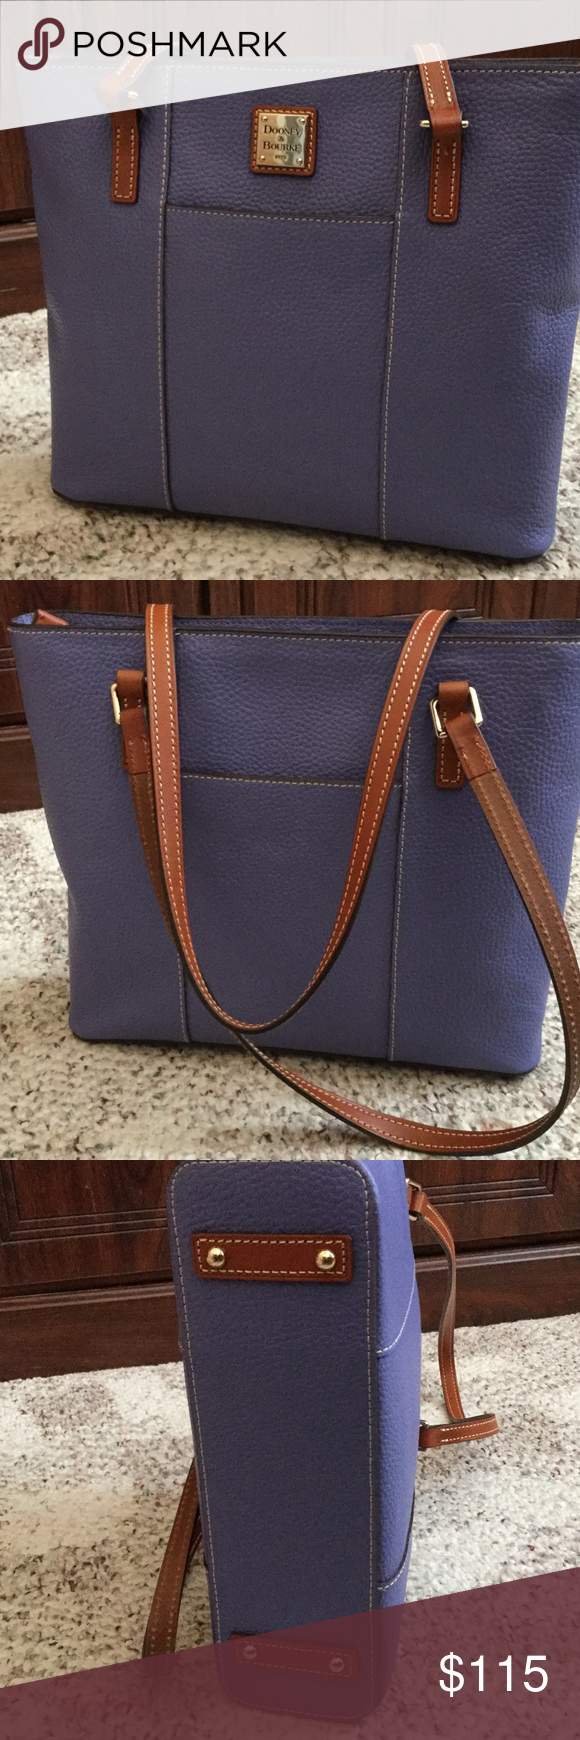 """Dooney Lexington shopper Pebble leather, two inside pockets. One inside pocket. Cell phone pocket. Inside key hook. Strap drop length 11.5"""". Front and back slip pockets. Lined. Feet. Zipper closure. No marks or stains inside or out from a smoke free homei. Color is lavender Bags Shoulder Bags"""